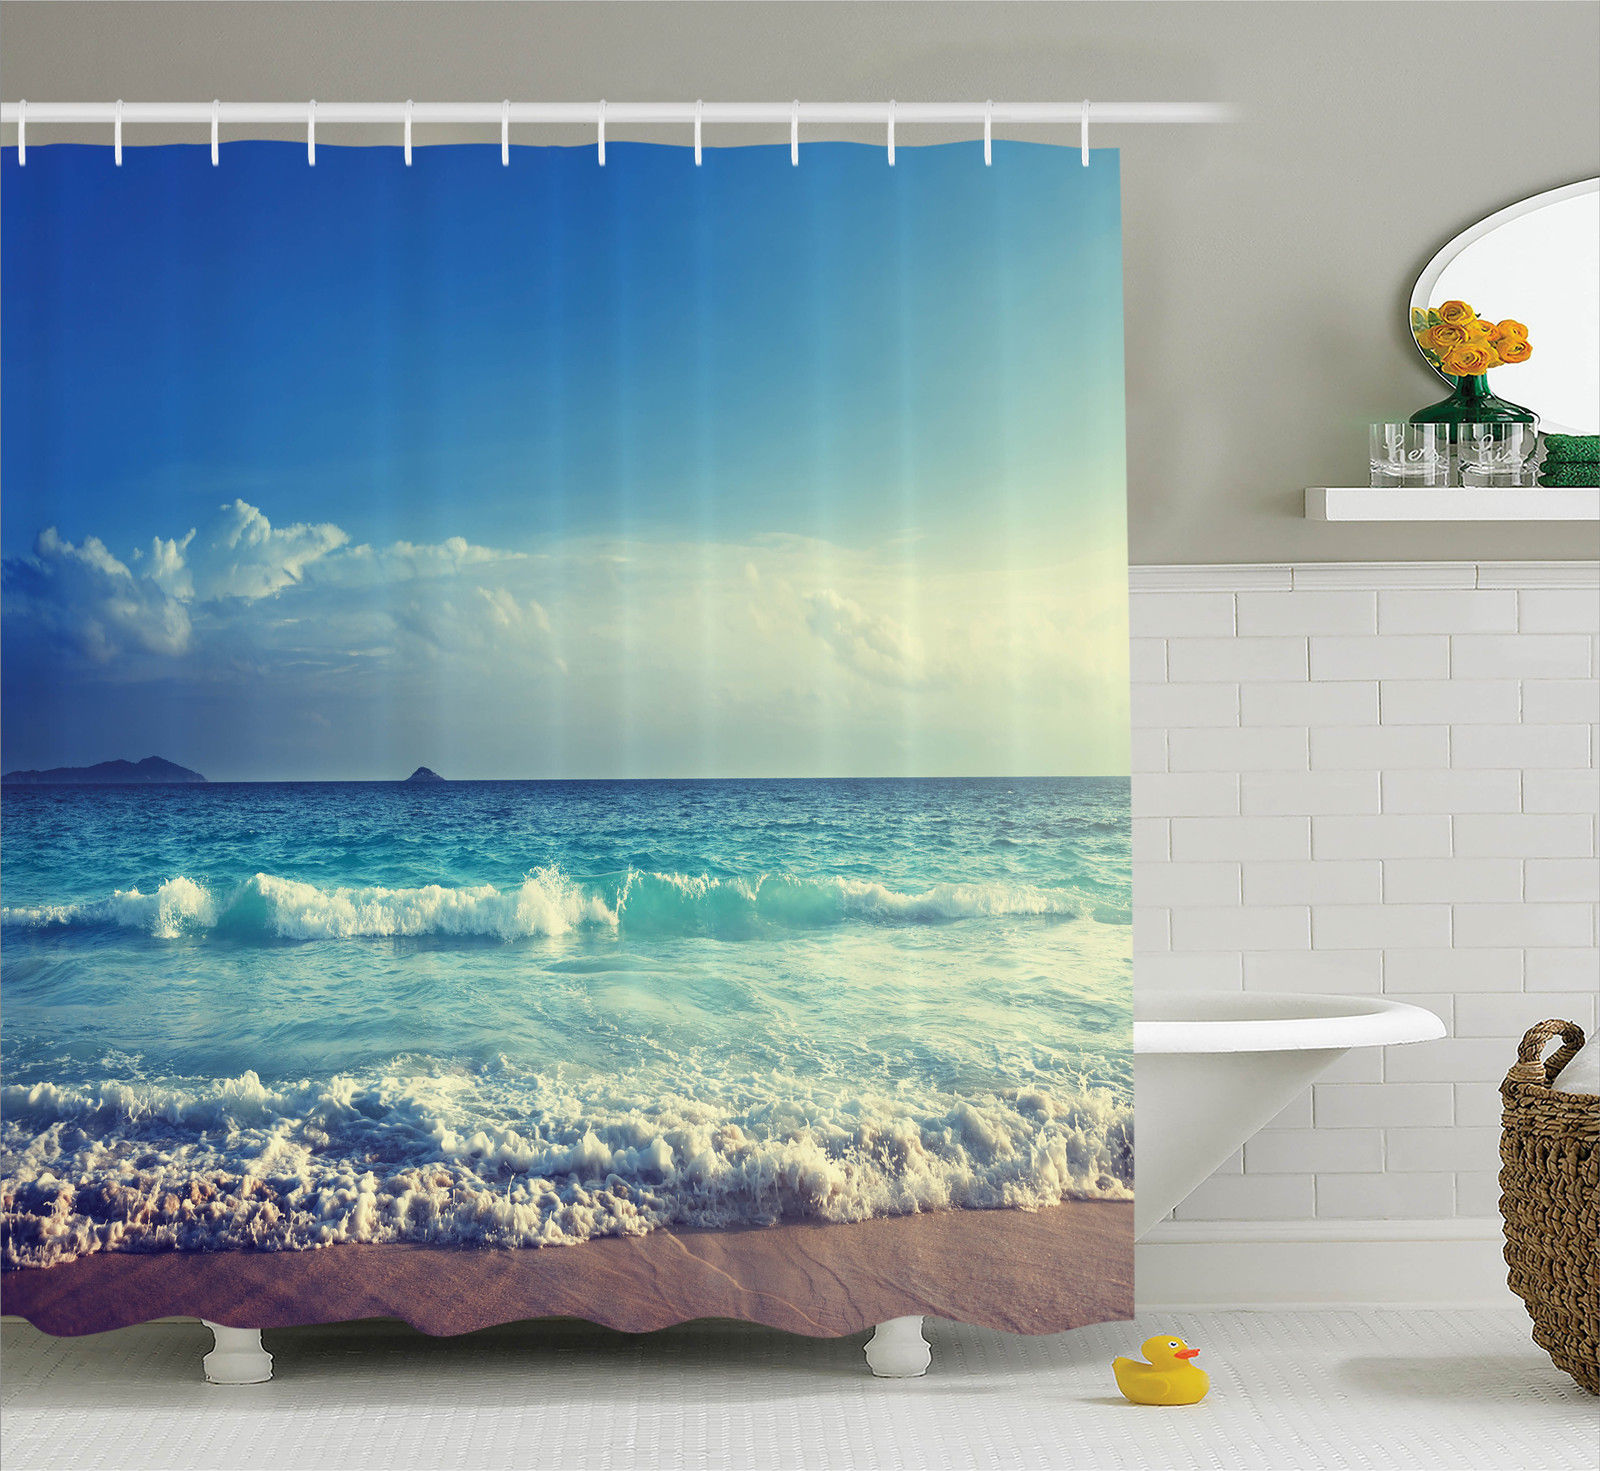 Ocean Decor Shower Curtain Set, Tropical Island Paradise Beach At Sunset Time With Waves And The Misty Sea Image, Bathroom Accessories, 69W X 70L Inches, By Ambesonne